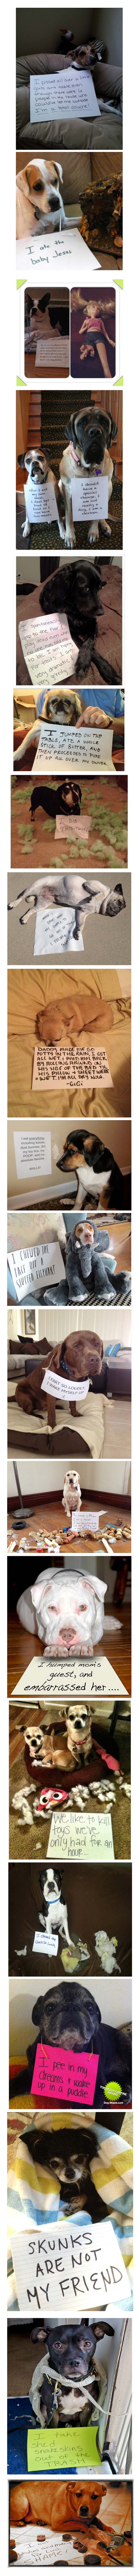 The best of dog shaming: